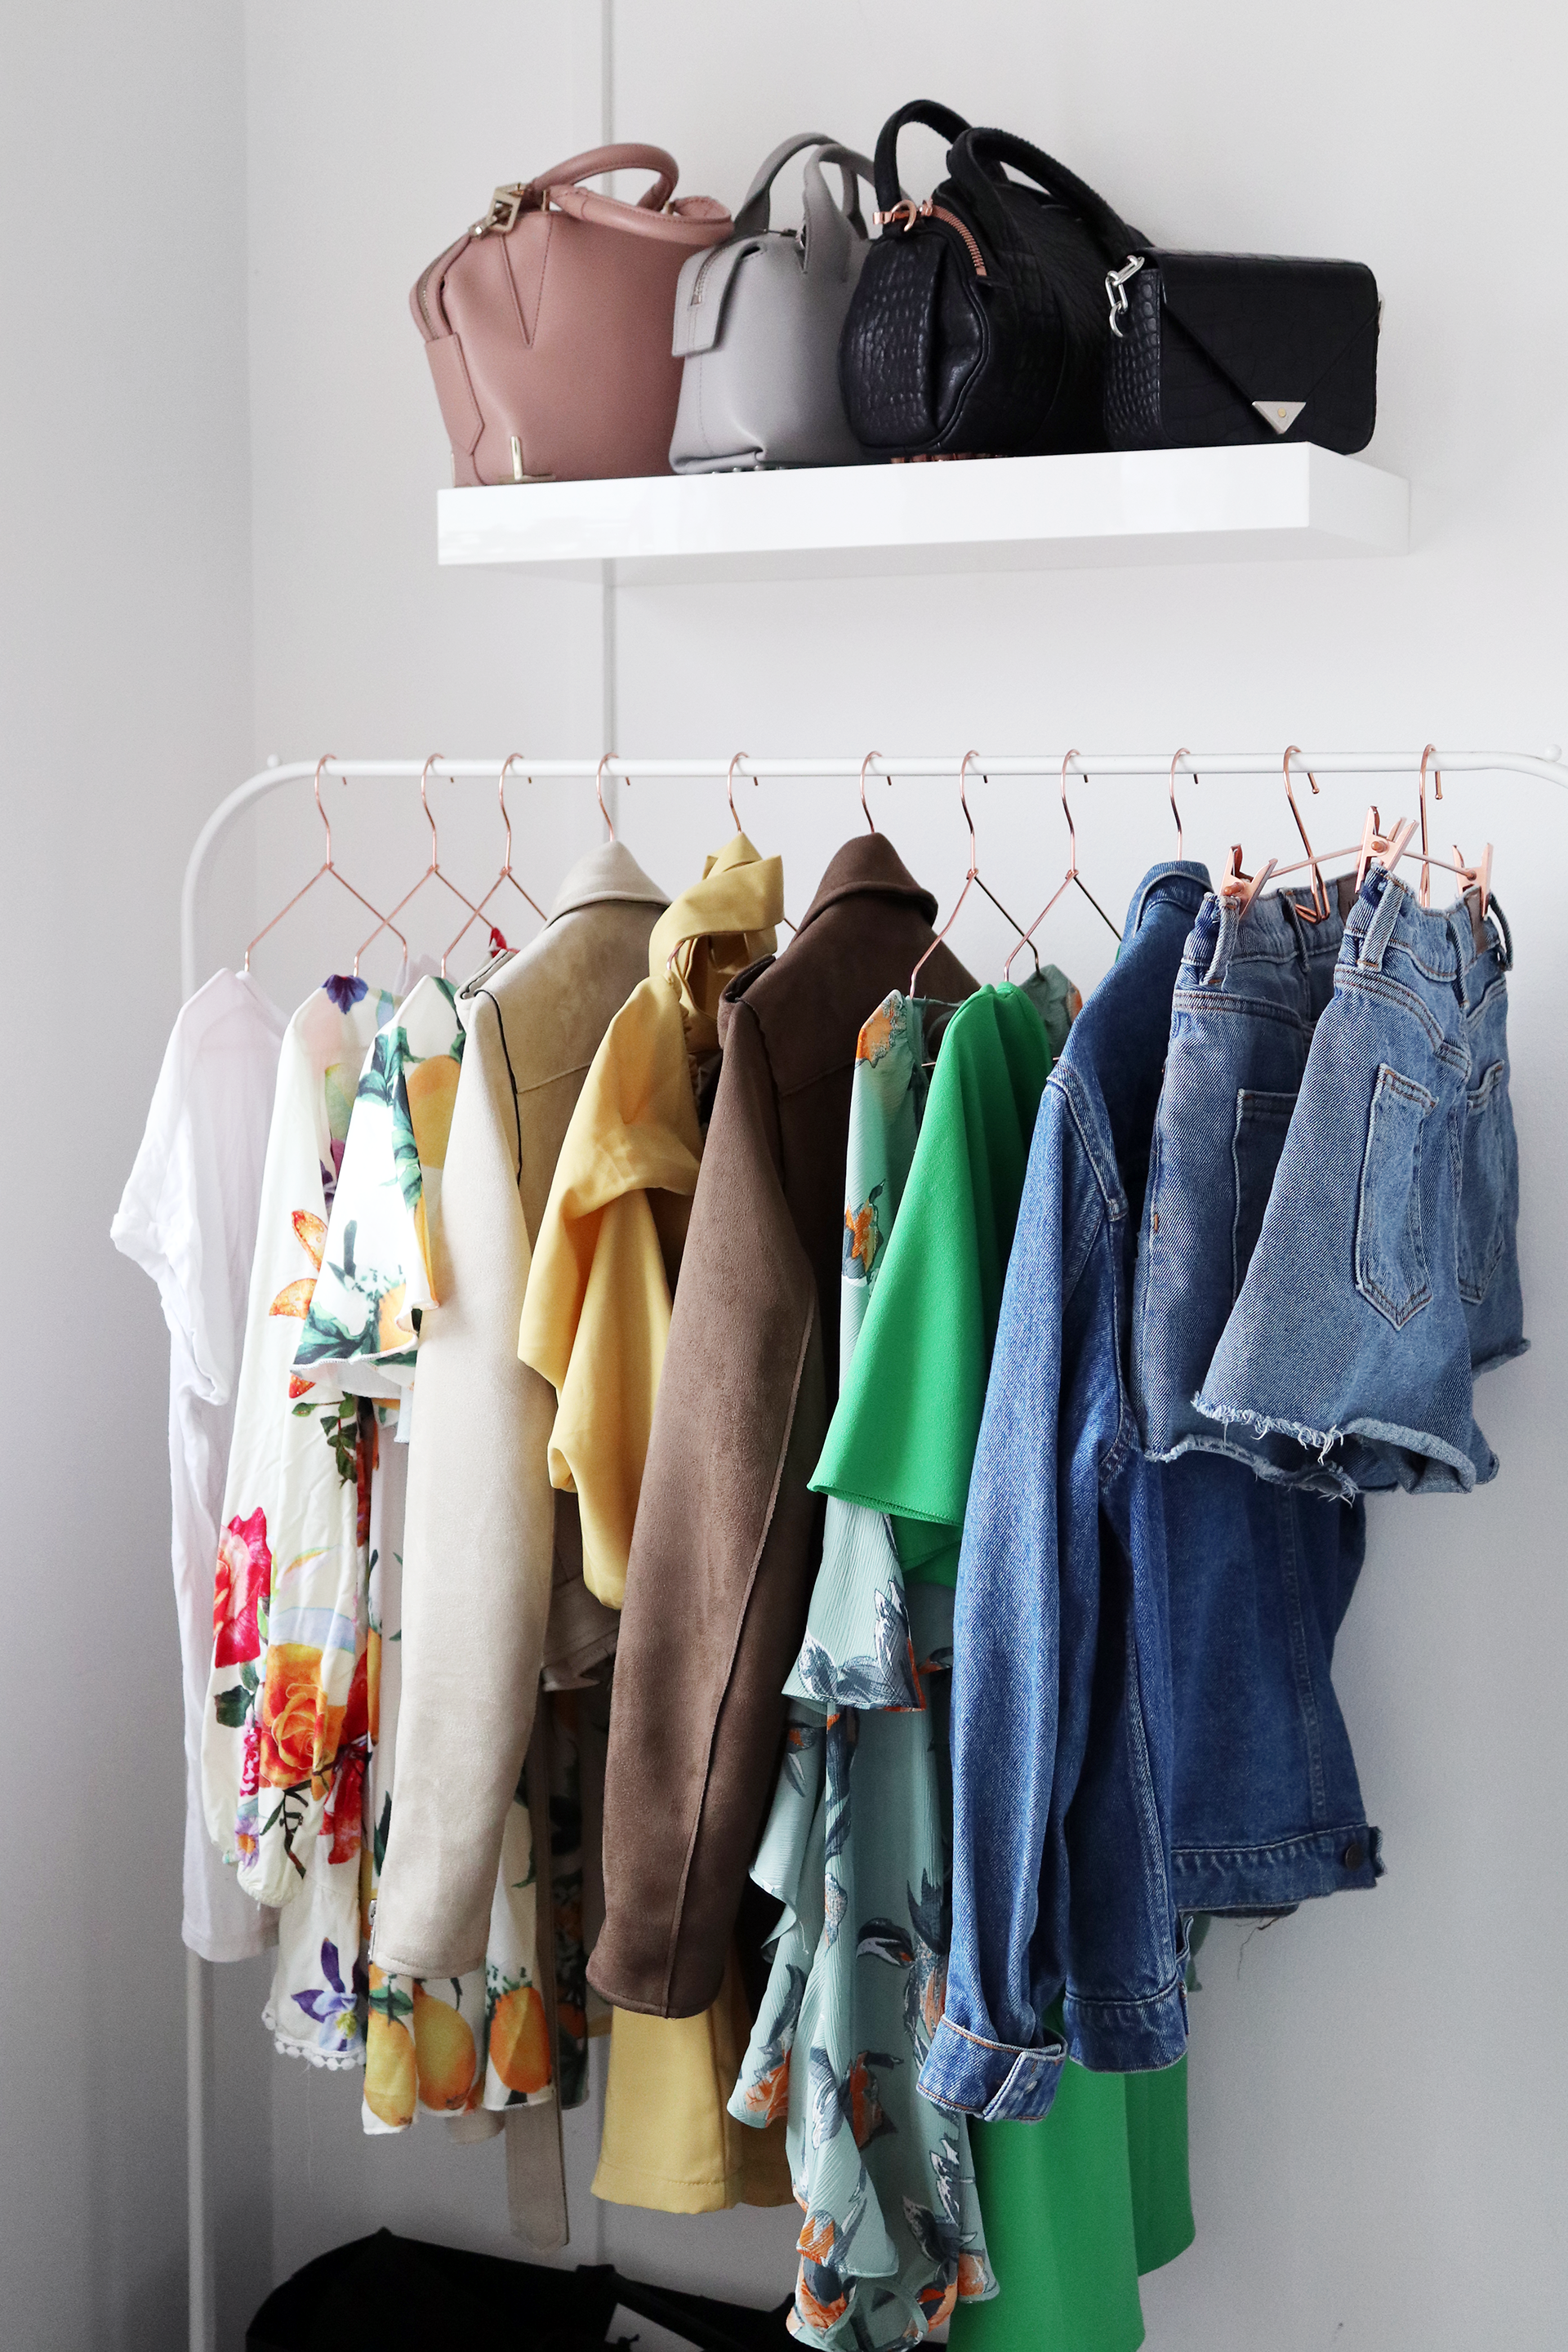 SUMMER FASHION GUIDE | Trends & Capsule Wardrobe Basics